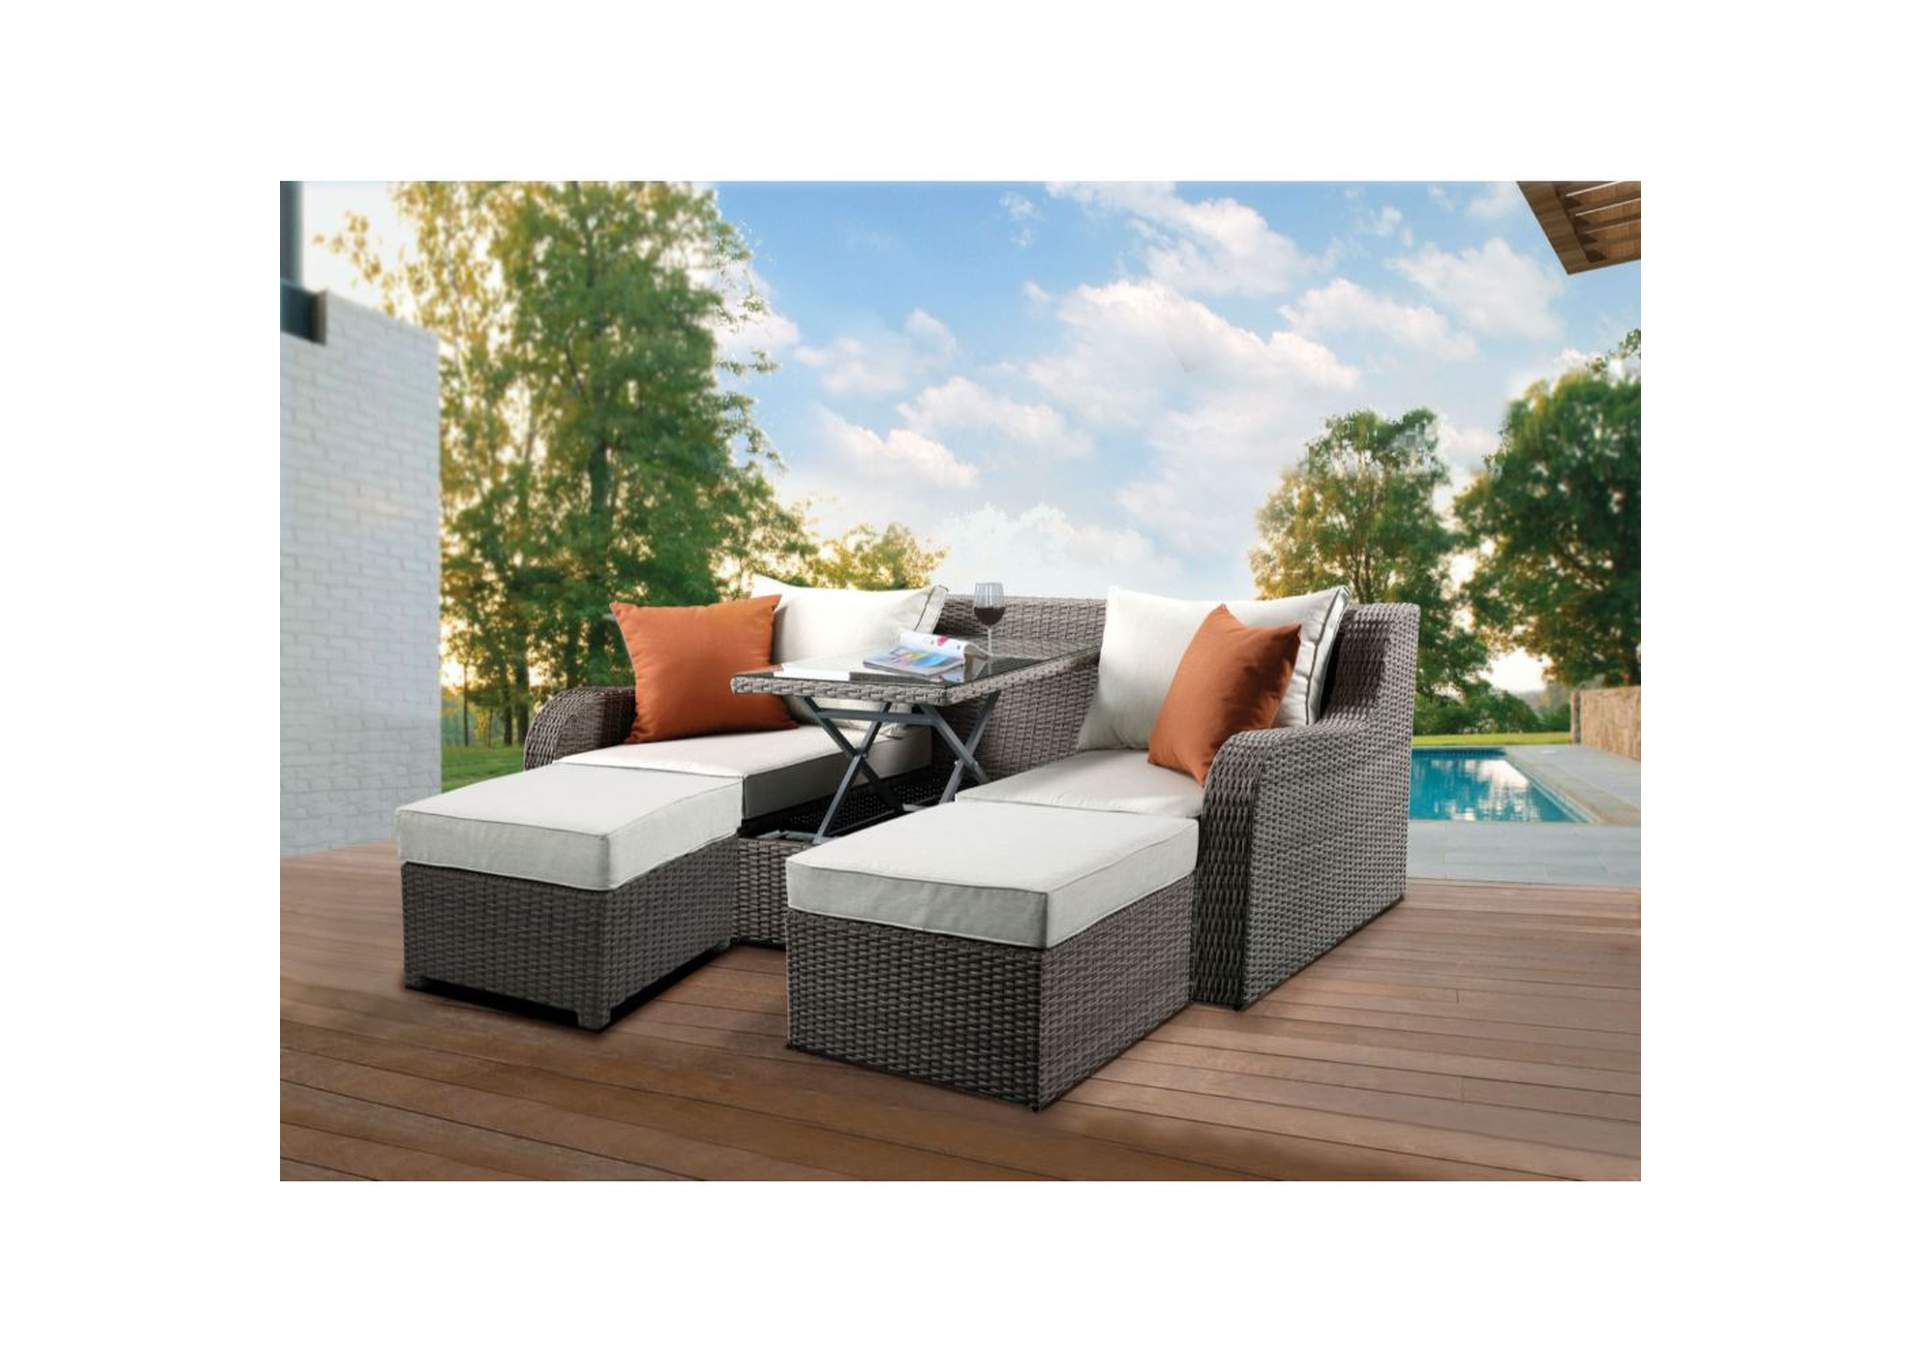 Patio Sectional w/2 Ottoman and 2 Pillow,Acme